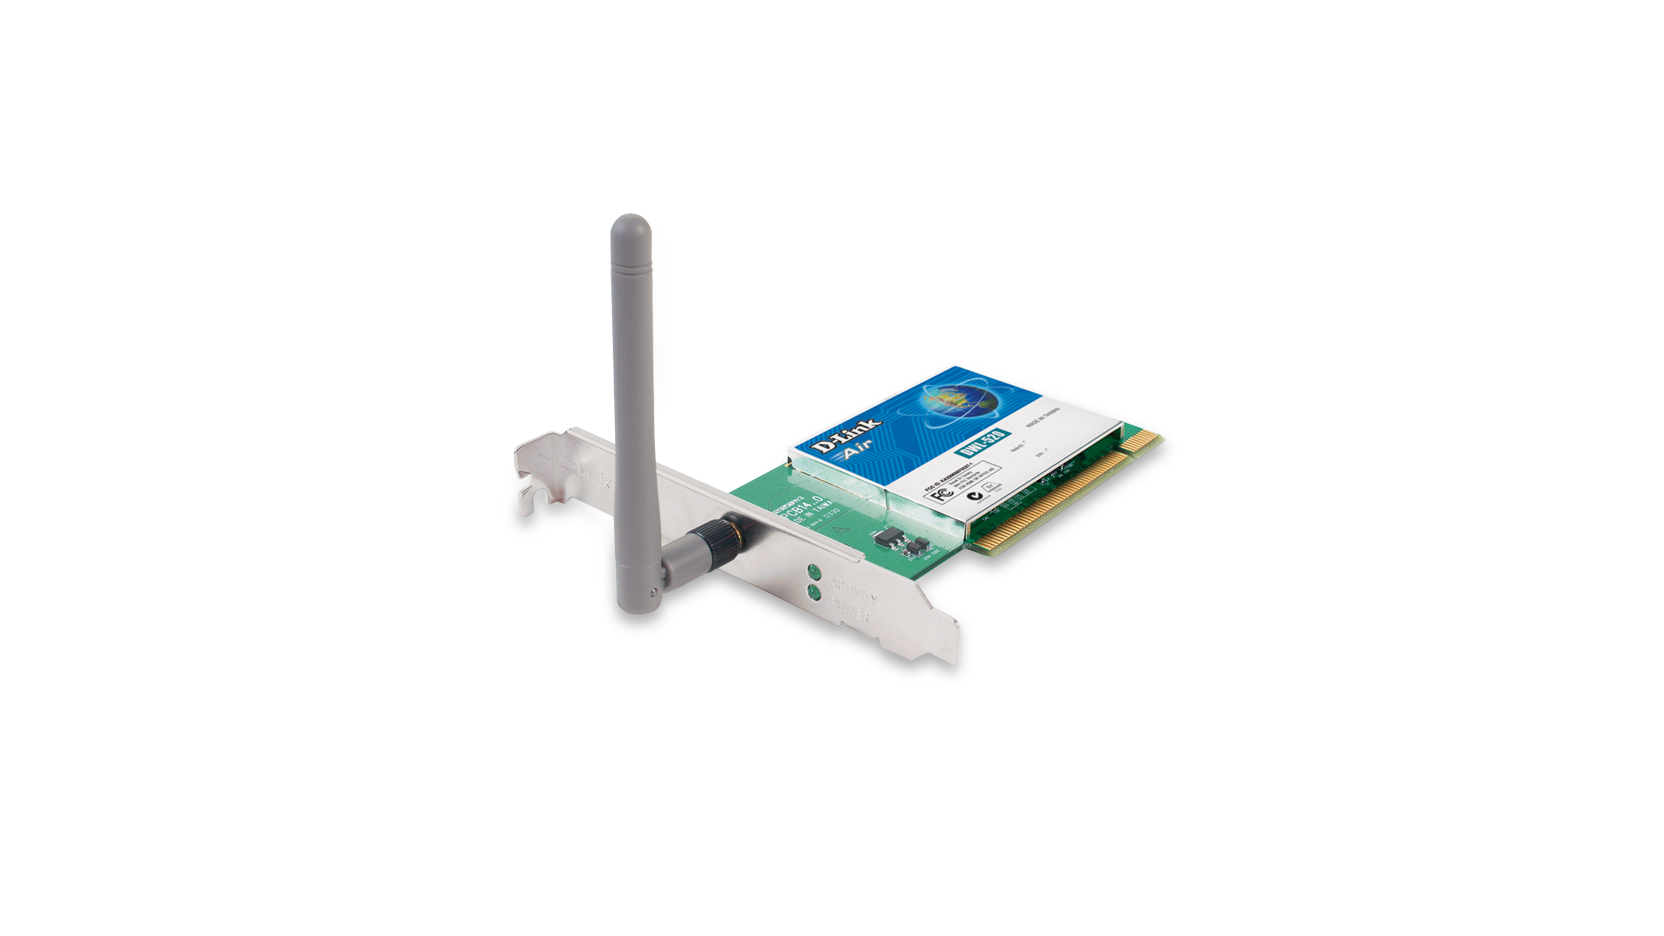 D-LINK DWL-G520 AIRPLUS DRIVER FOR PC